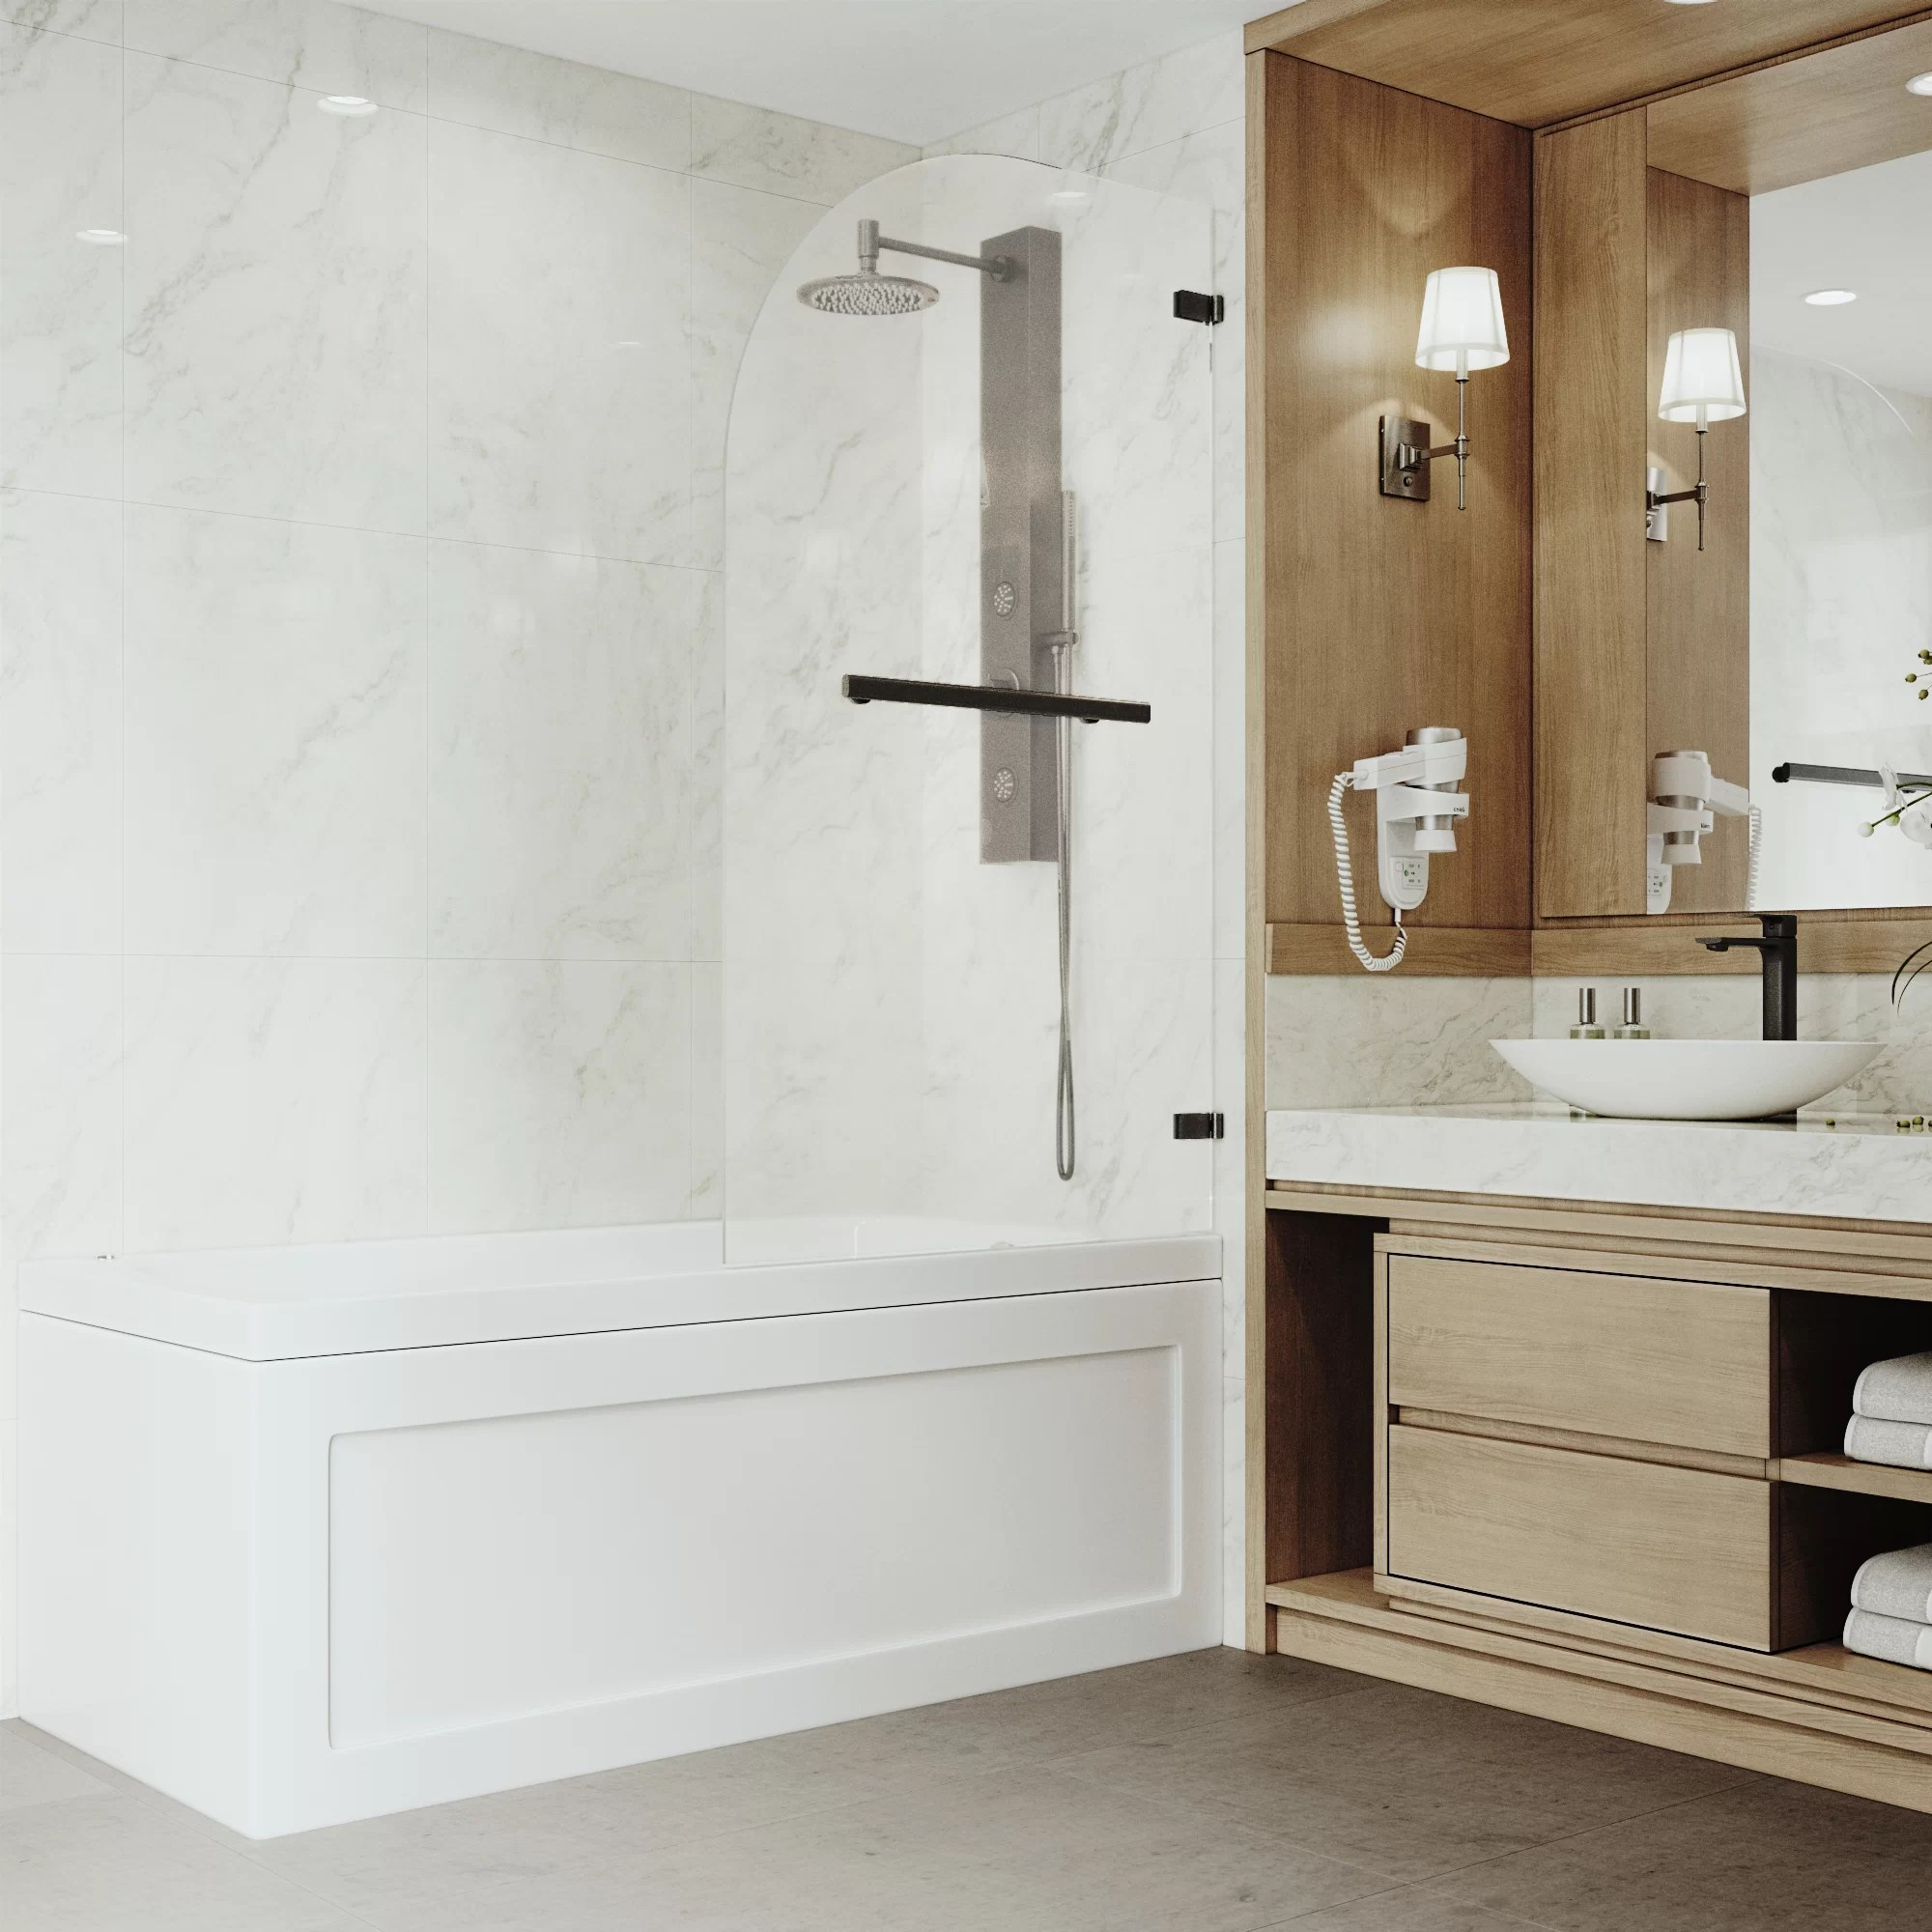 Orion 34 X 58 Hinged Frameless Tub Door With Flex Sizing Technology